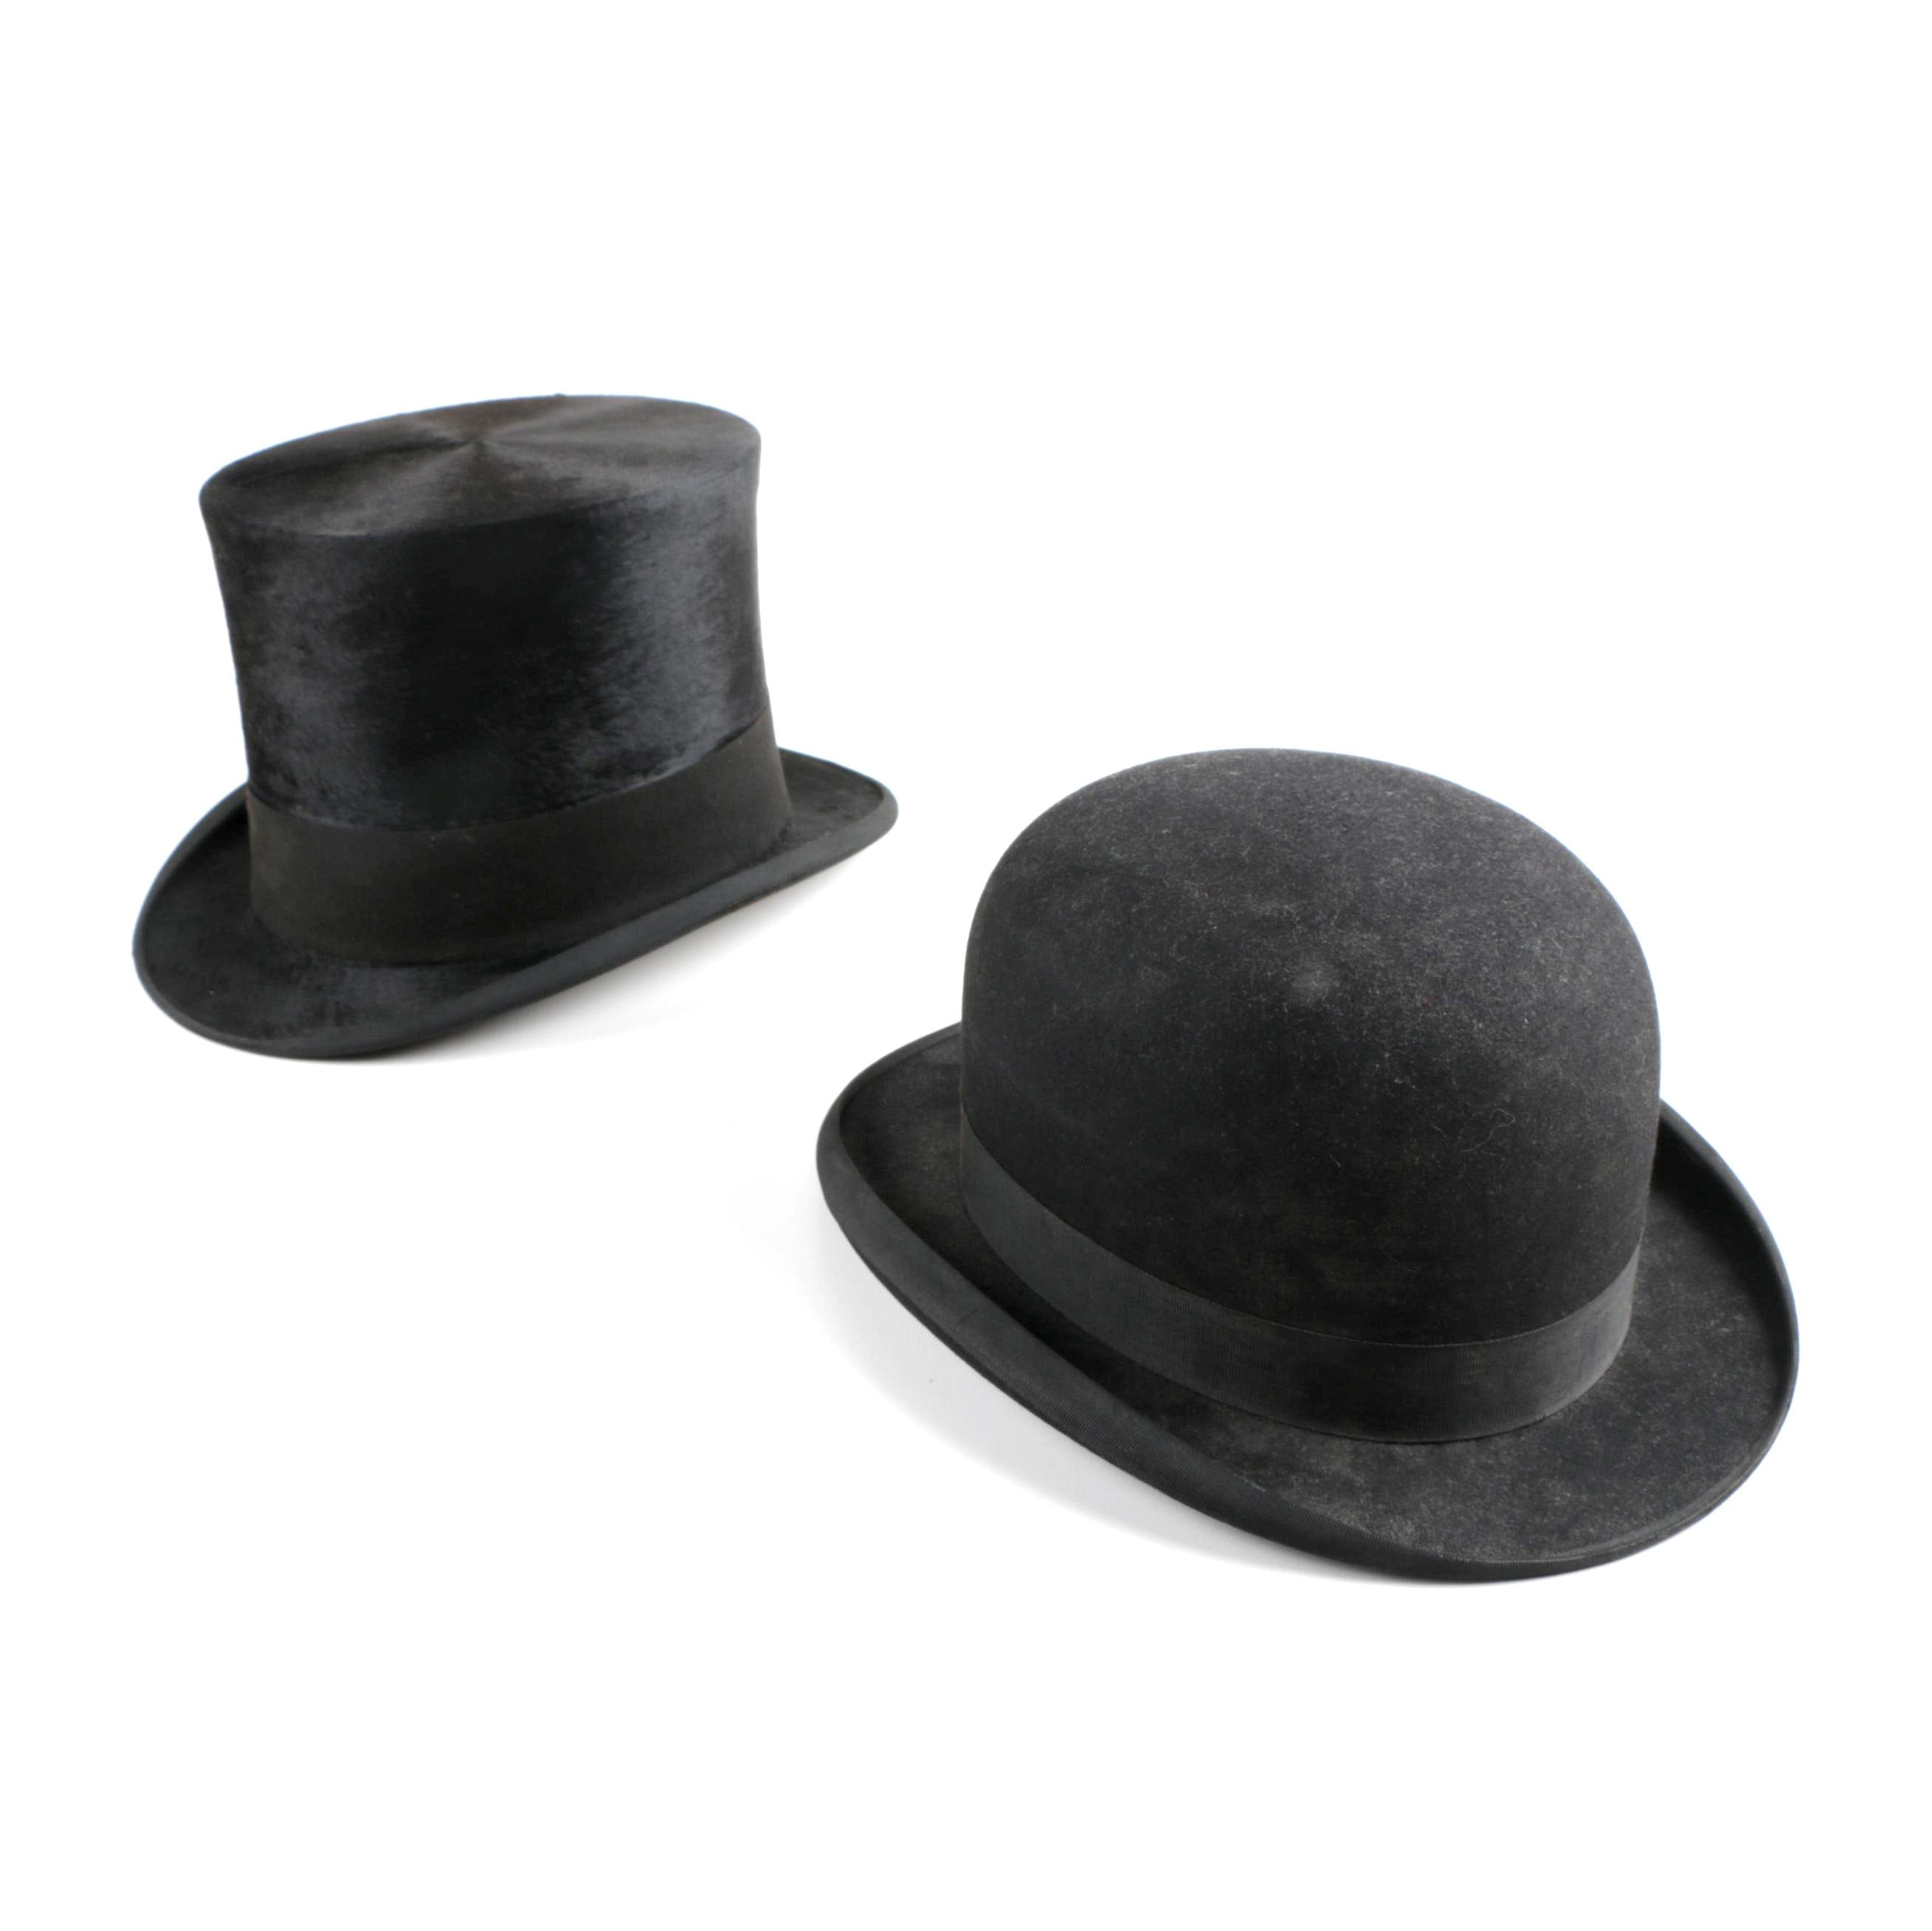 Vintage Stetson Bowler Hat and Collins & Fairbanks Top Hat